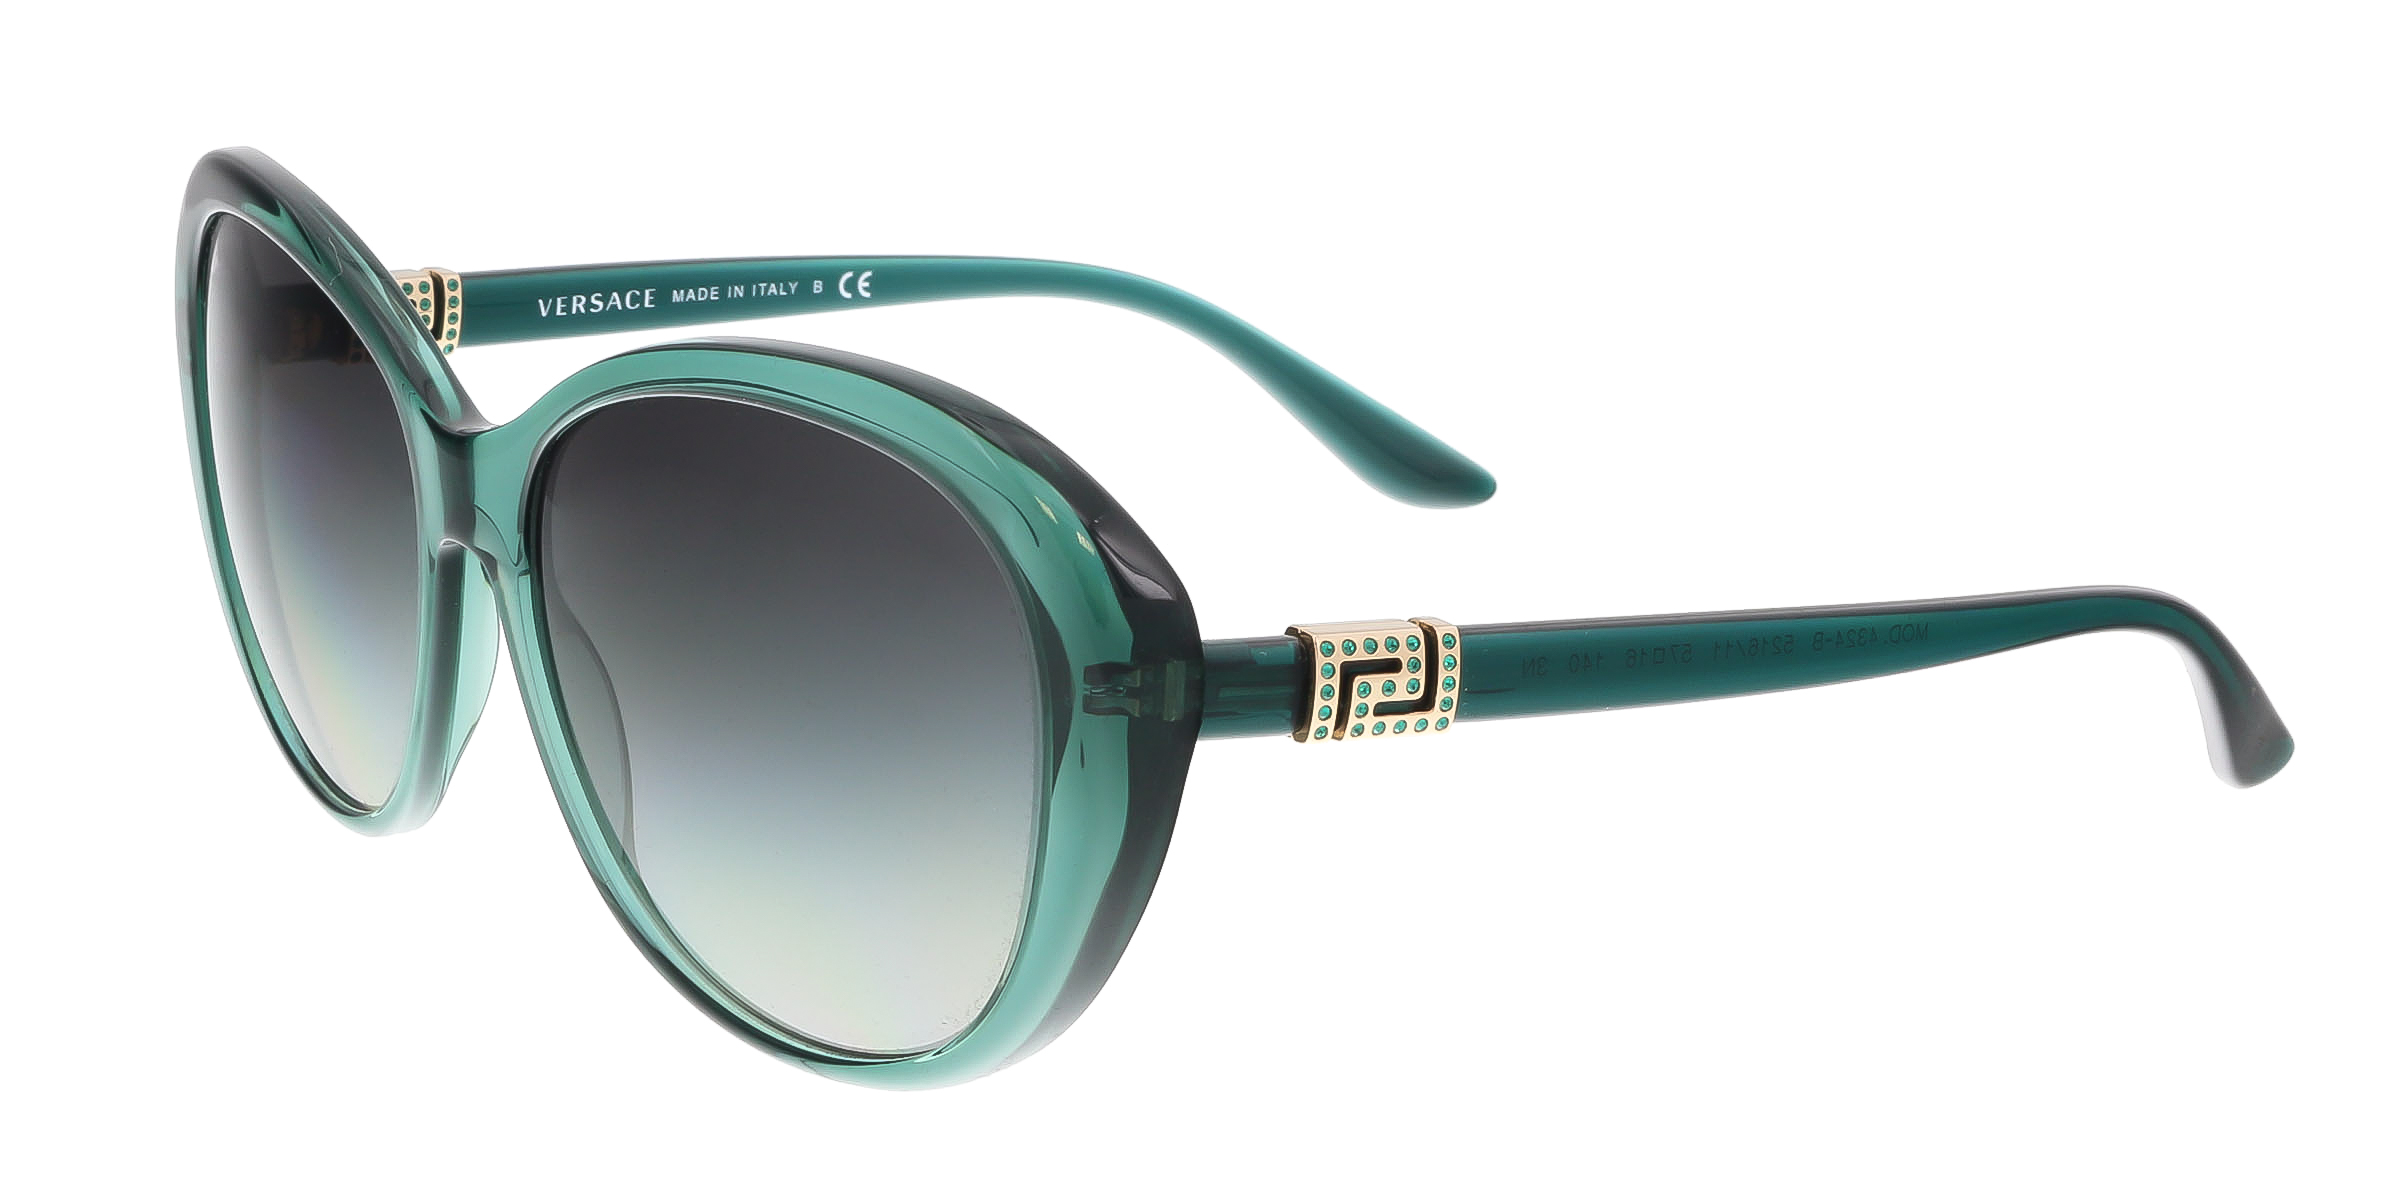 Versace VE4324B 521611 Transparent Green Oval  Greek Key Chic Sunglasses